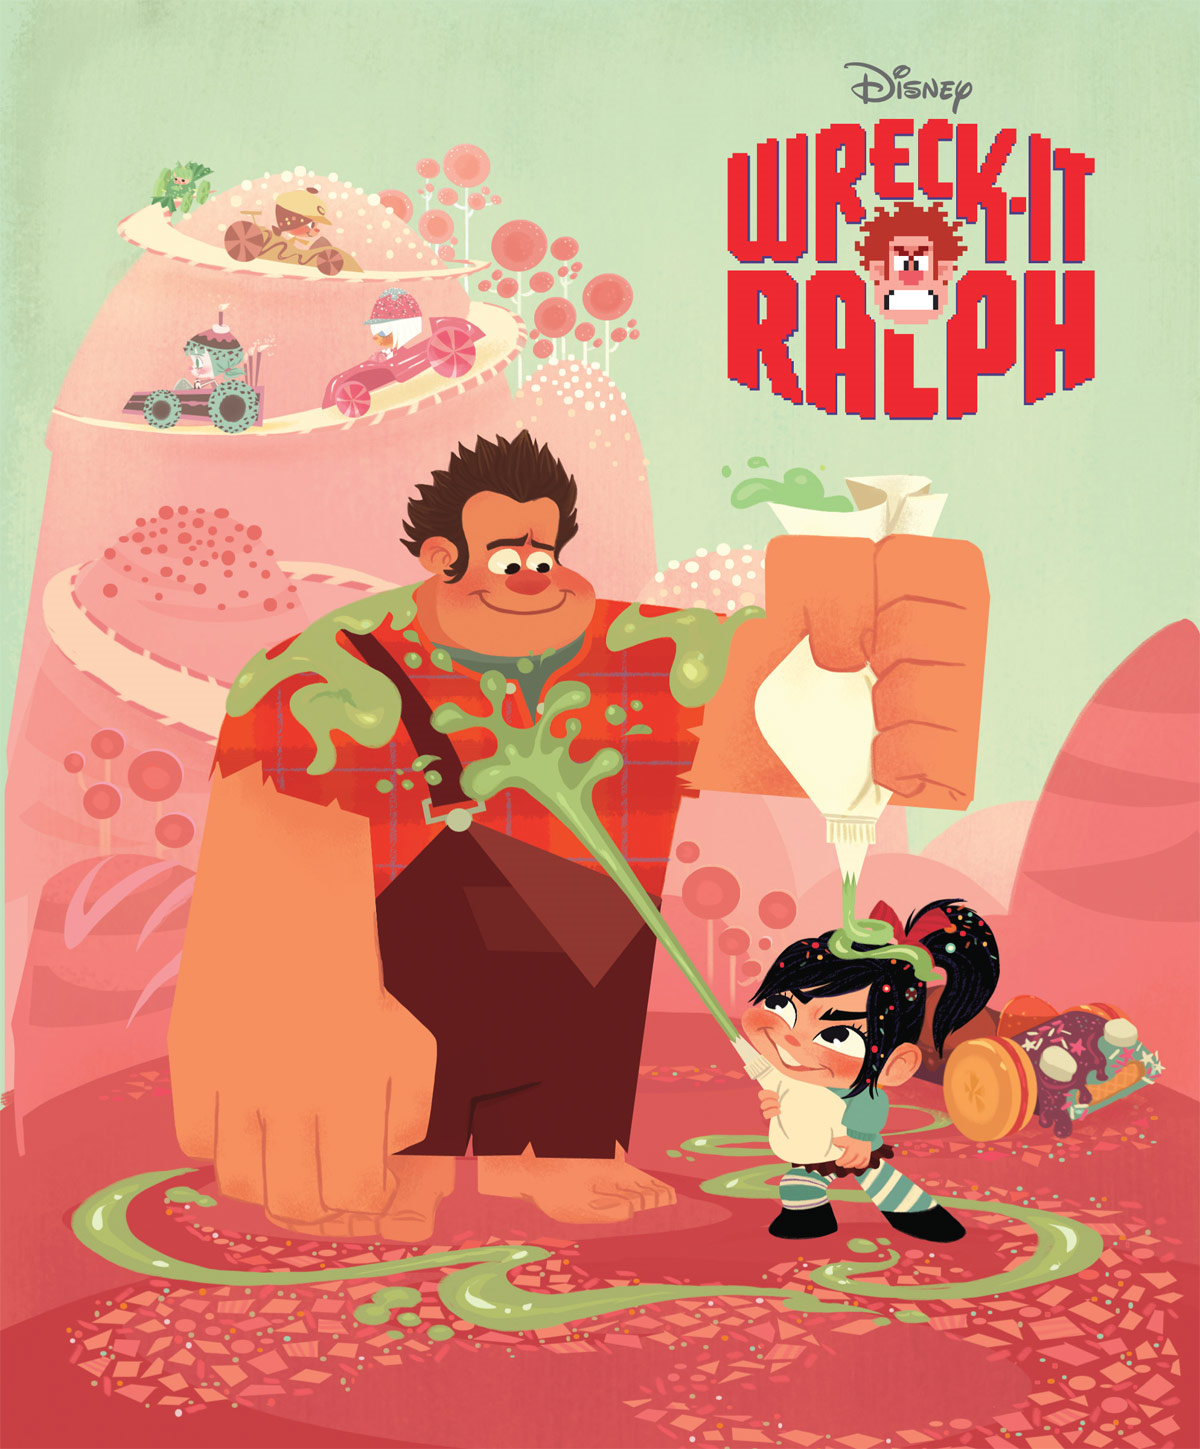 Disney Classic Stories:  Wreck-It Ralph